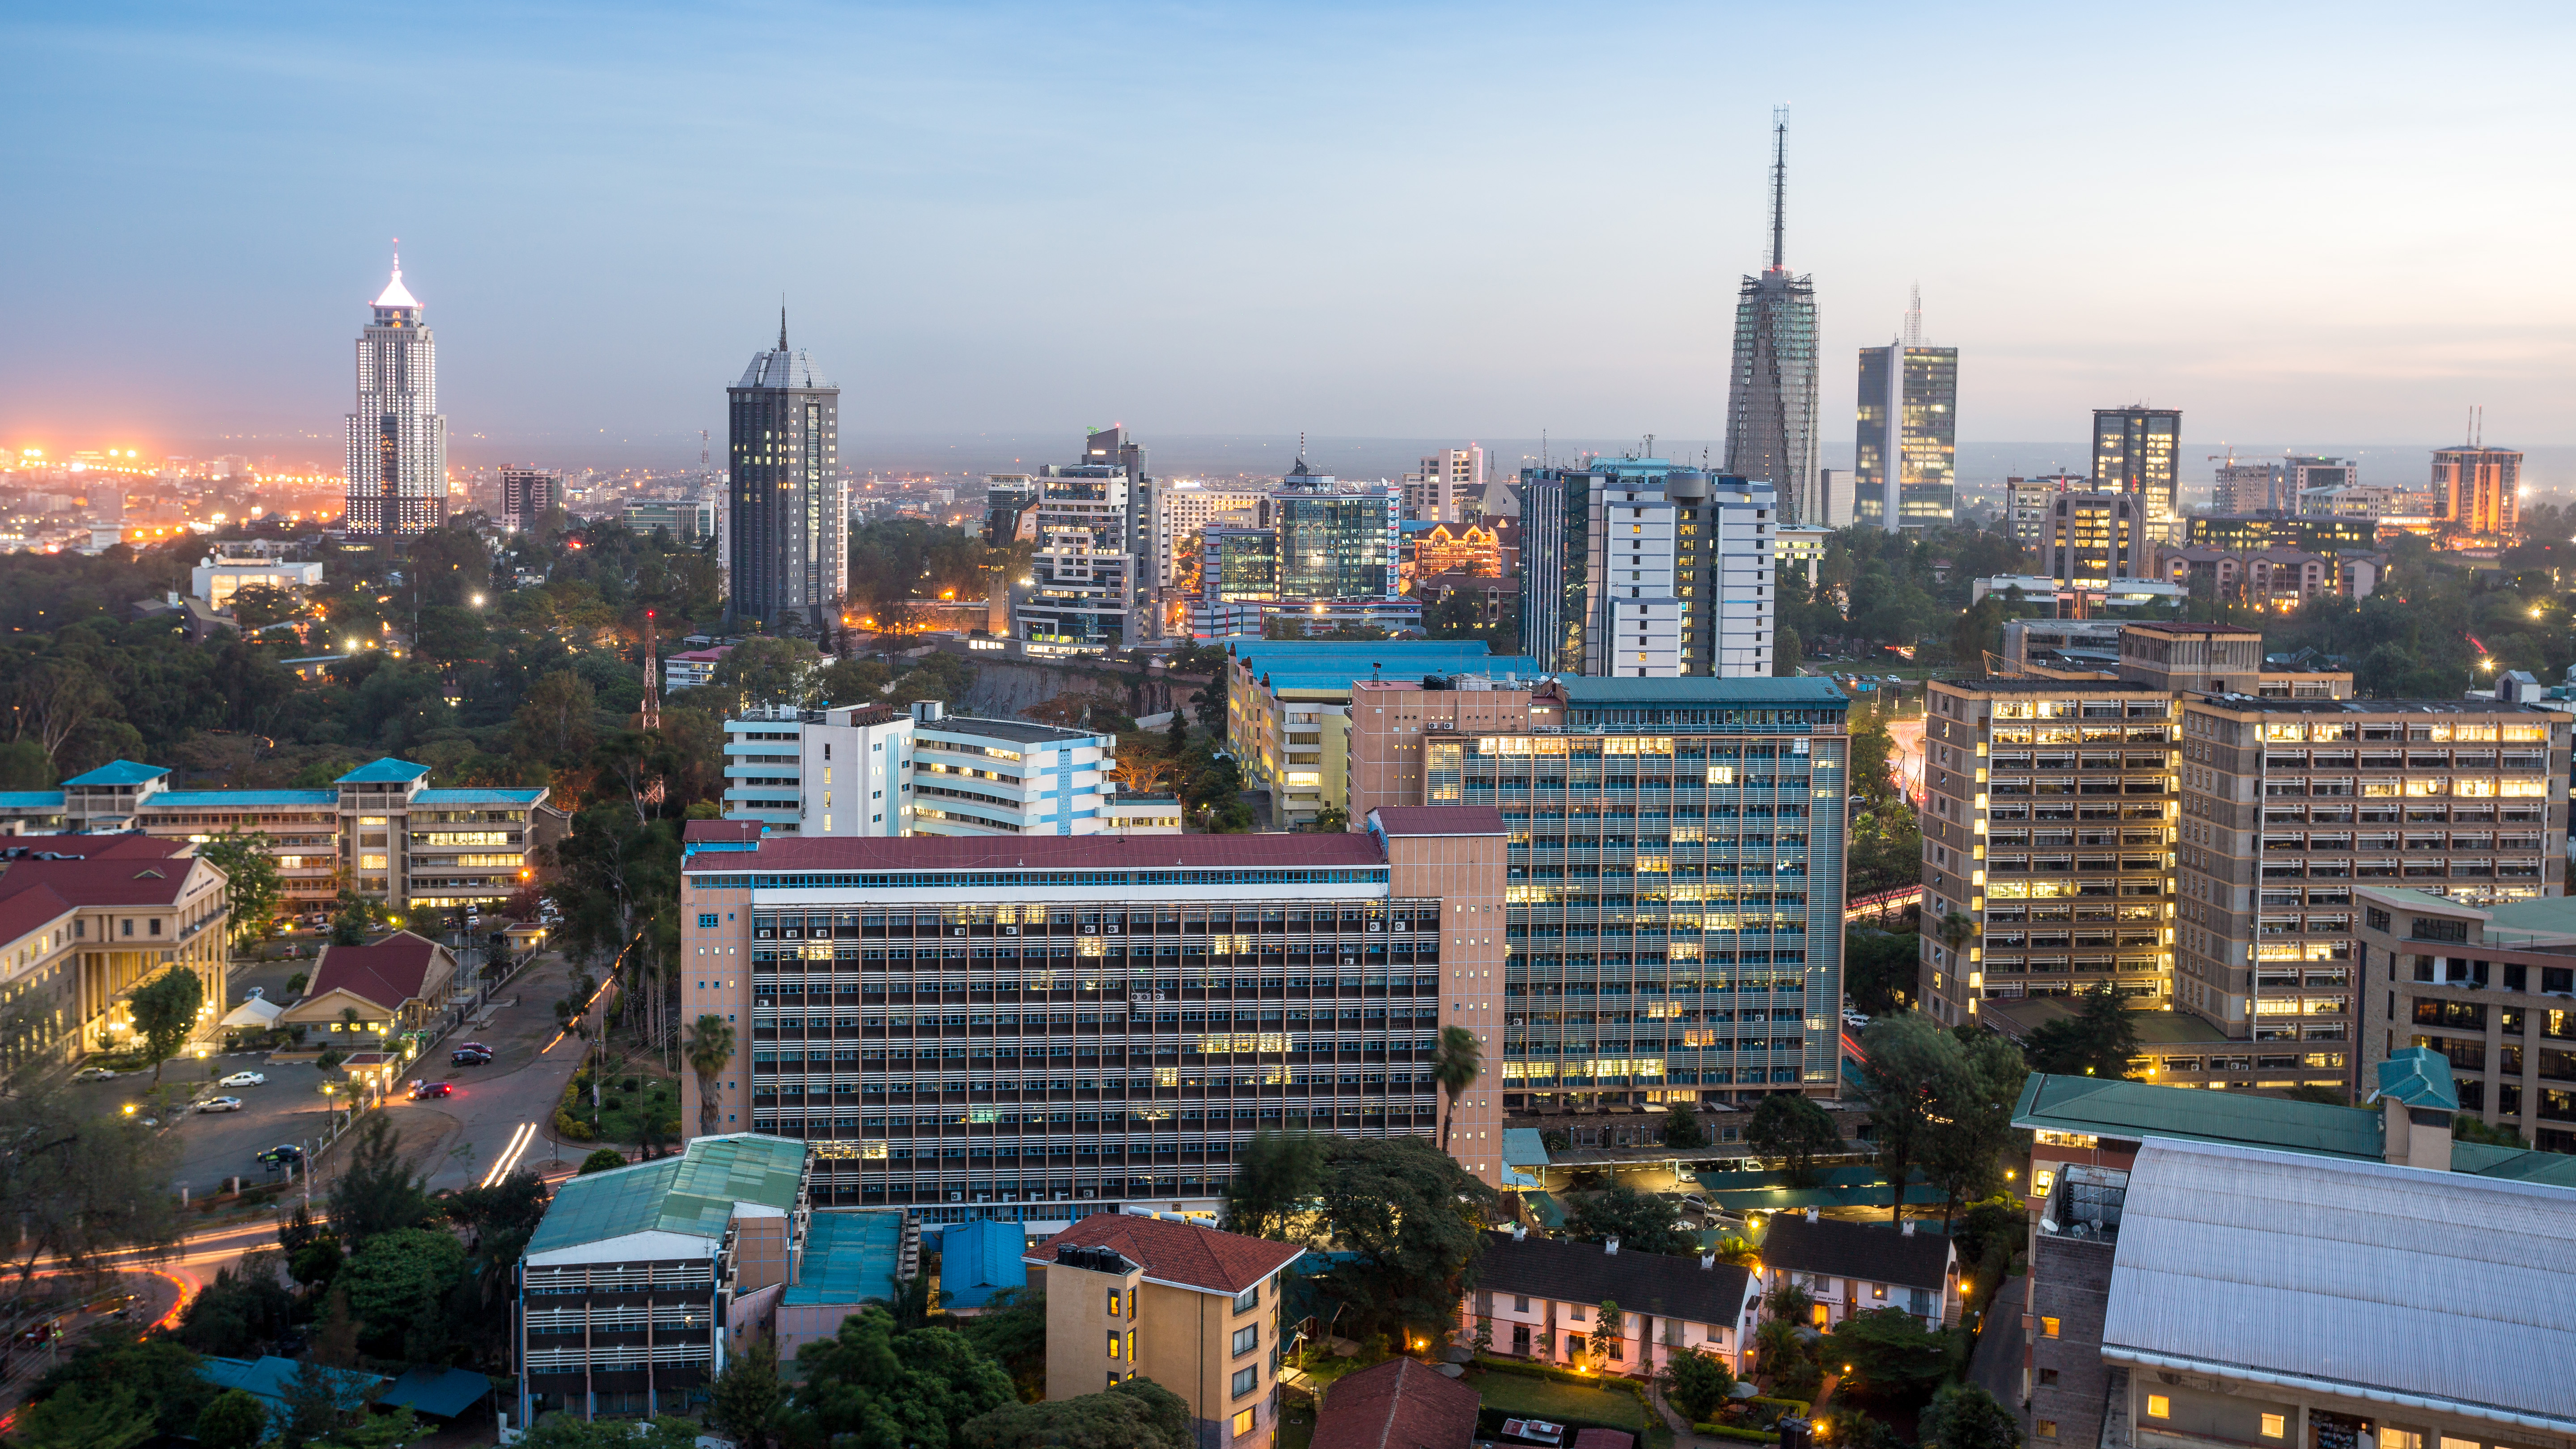 Kenya Skyline - Mace Group